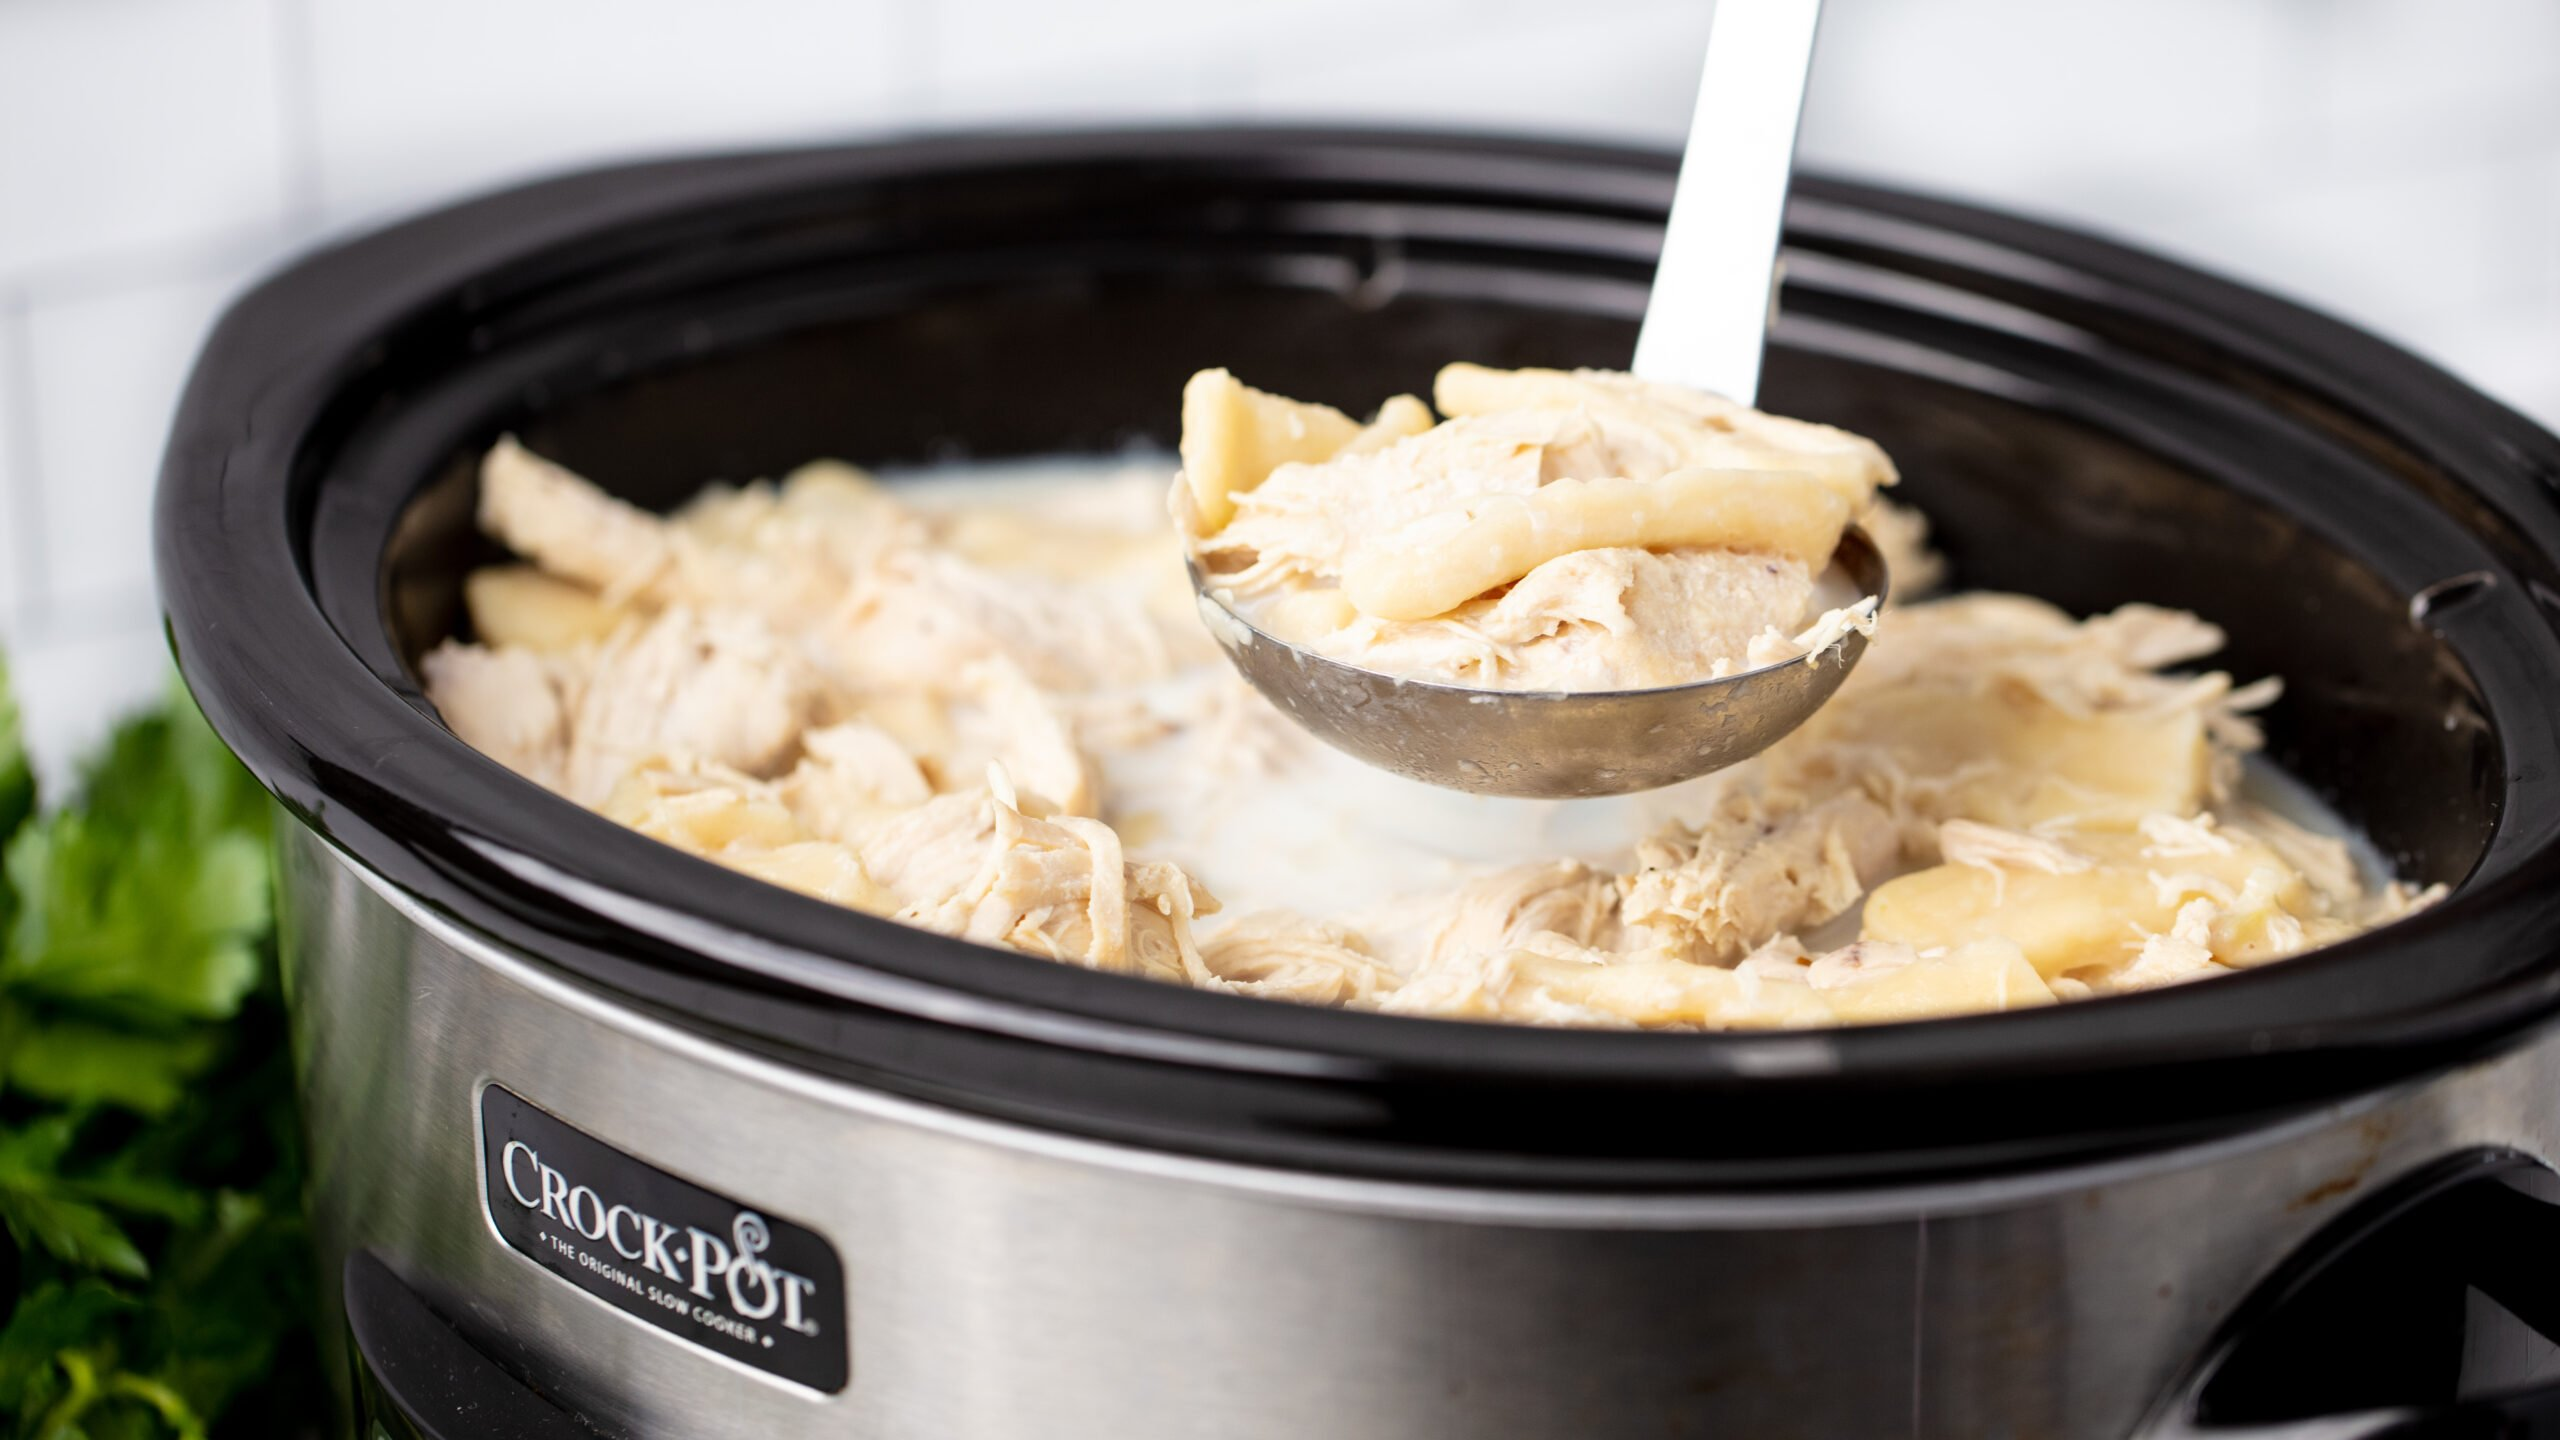 Chicken and dumplings in a crockpot